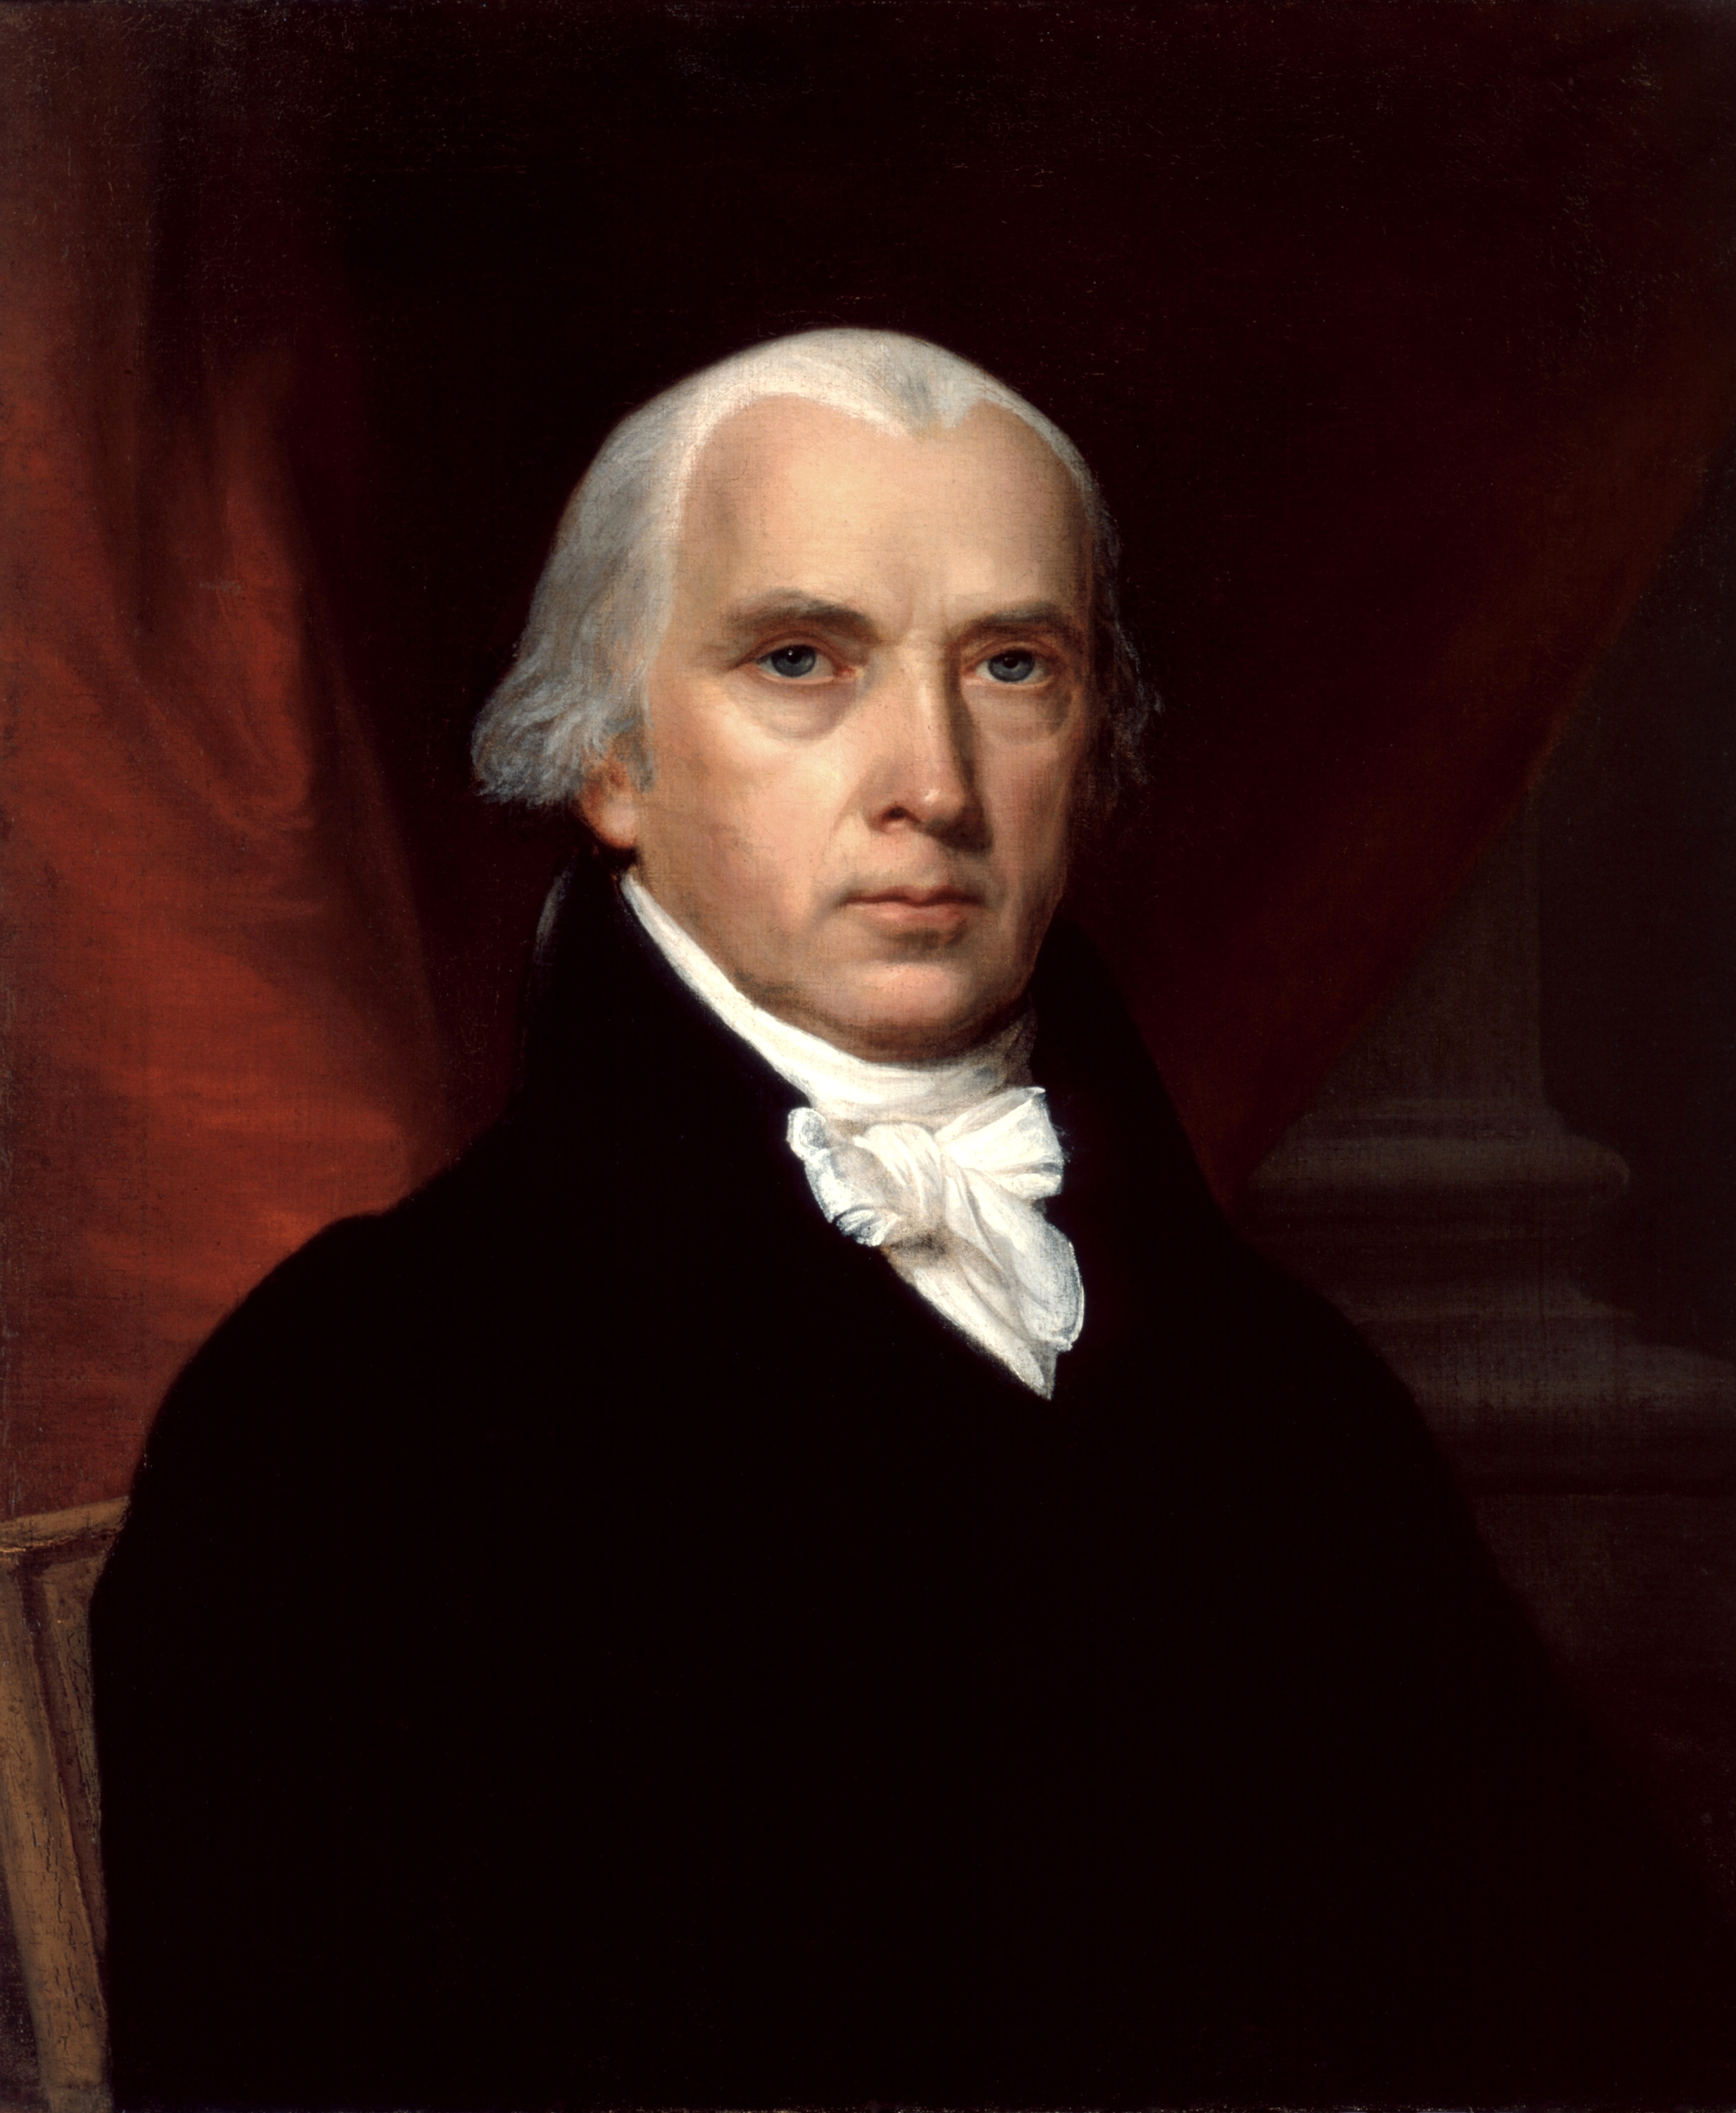 James Madison and the Constitution | The Gilder Lehrman